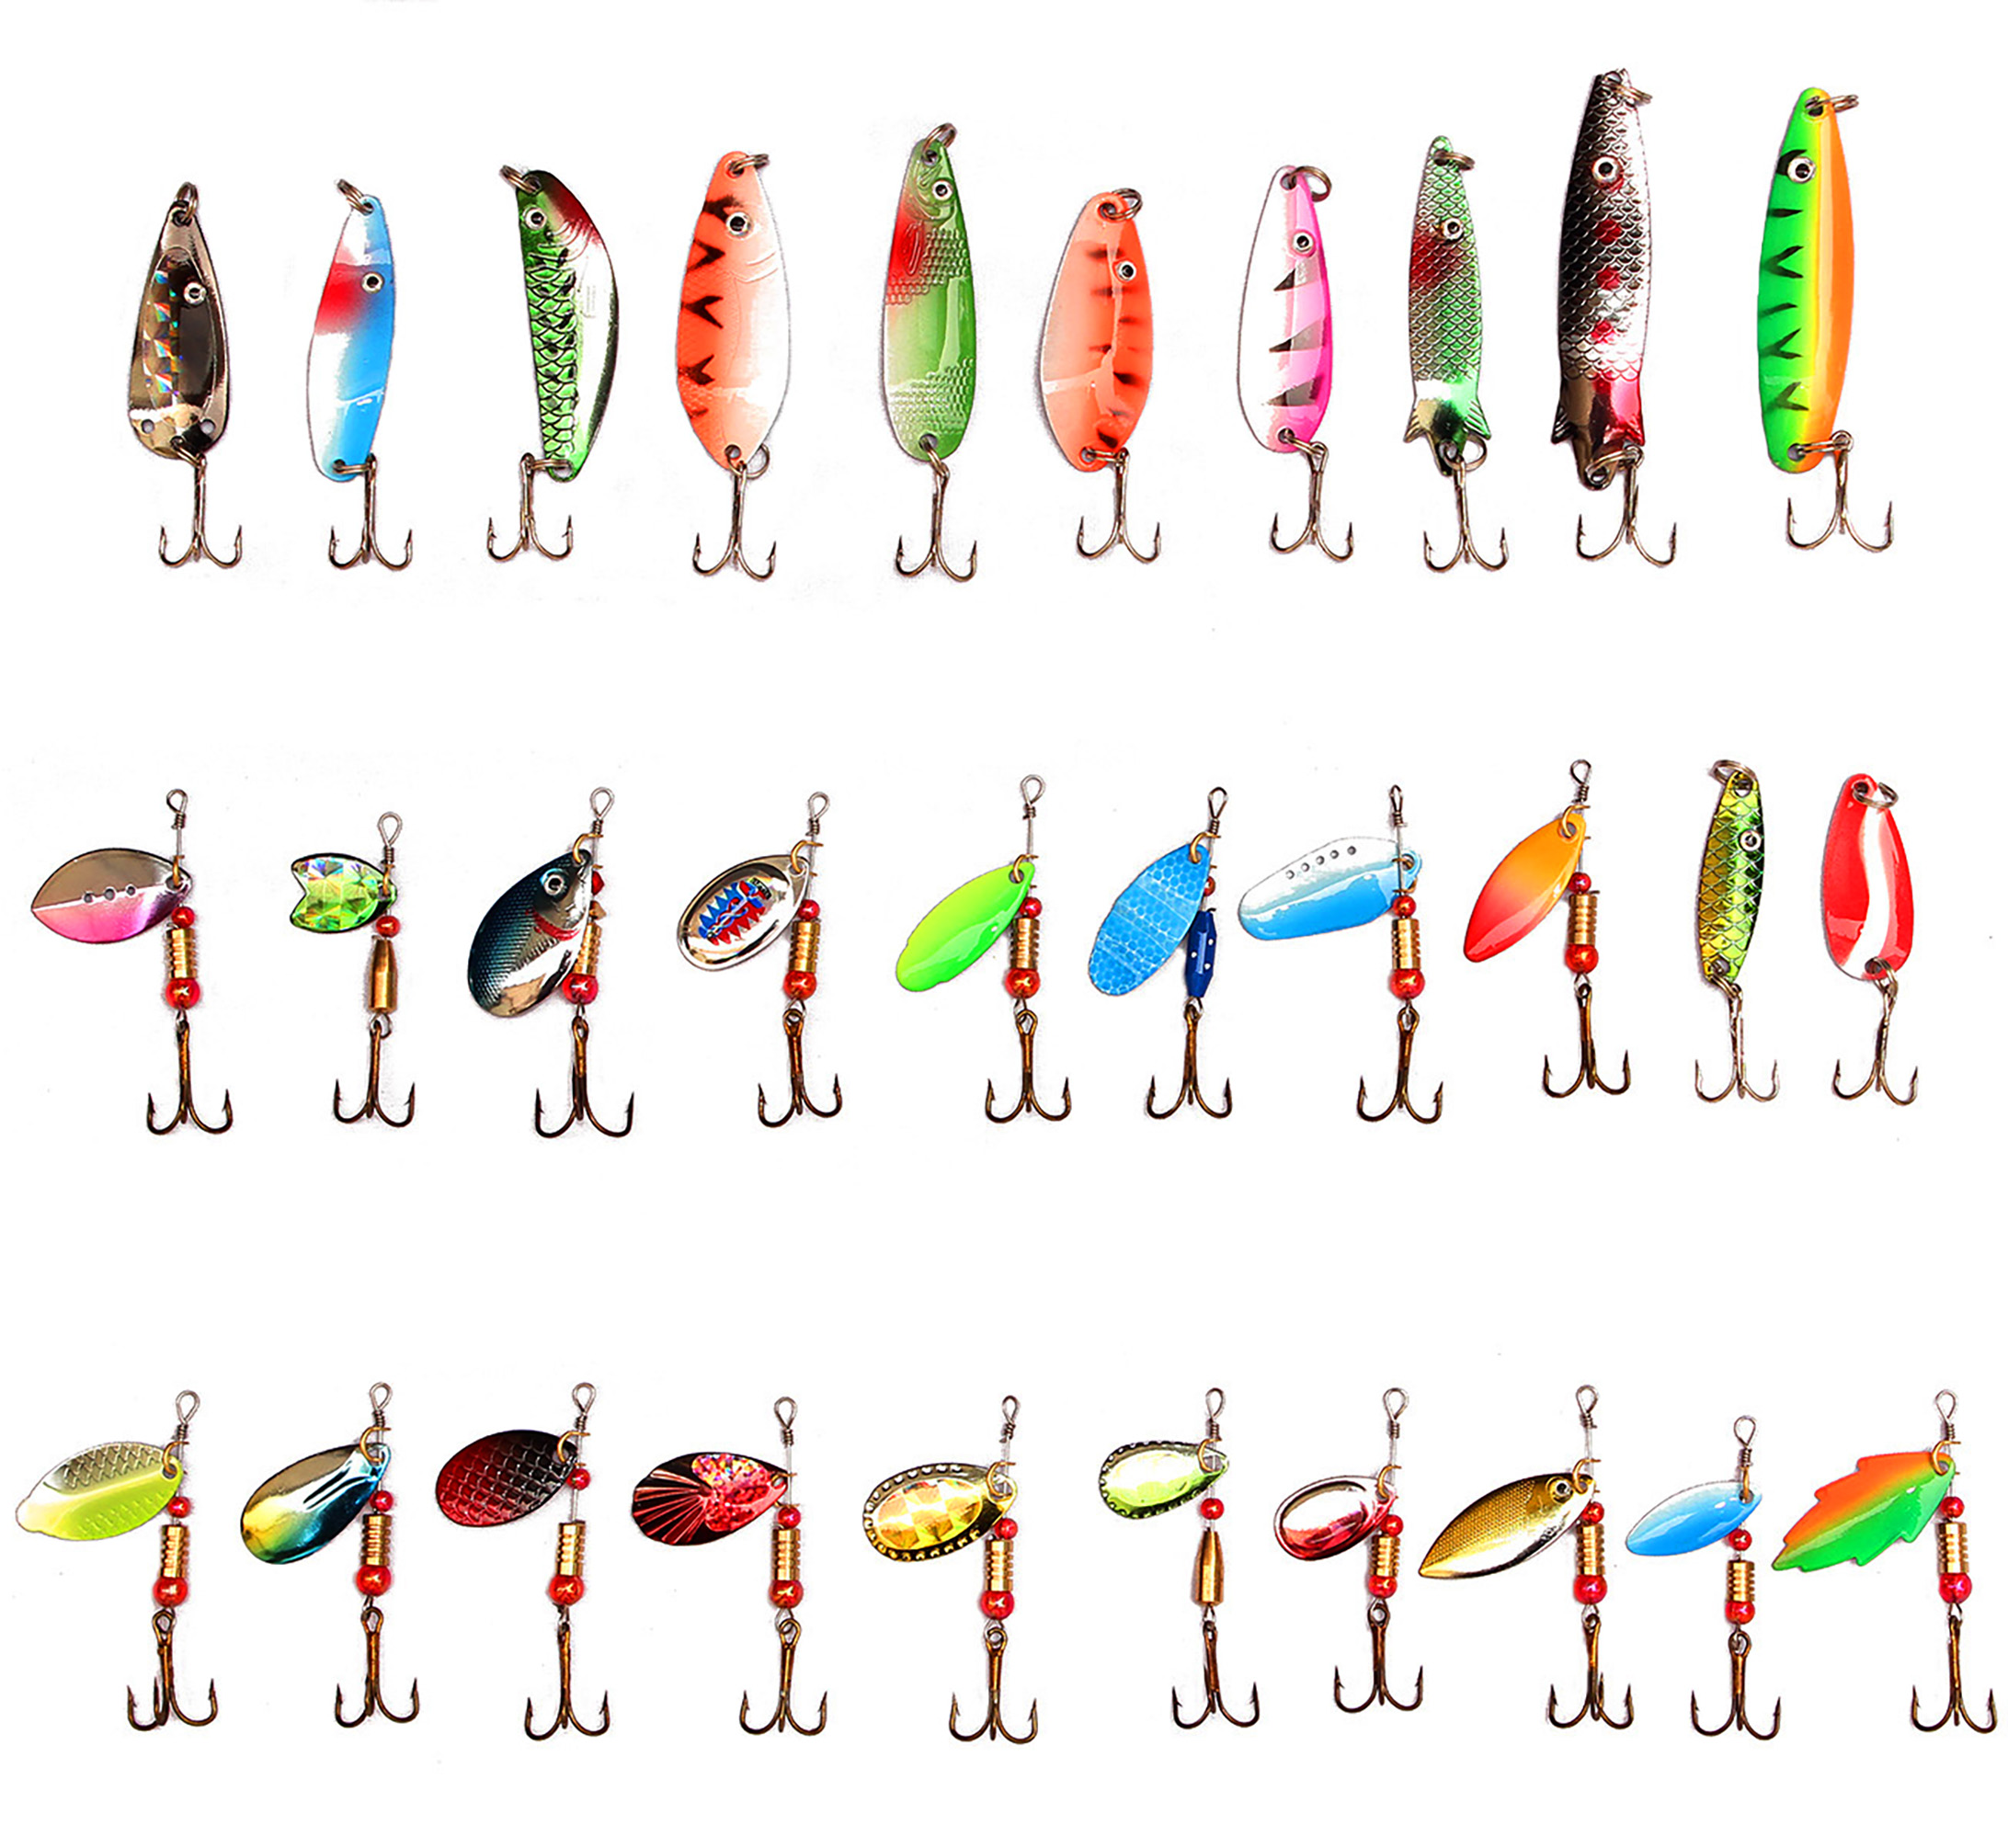 Click here to buy LotFancy Lot 30PCS Fishing Lures Spinner Baits Crankbait Assorted Fish Tackle Hooks by LotFancy.